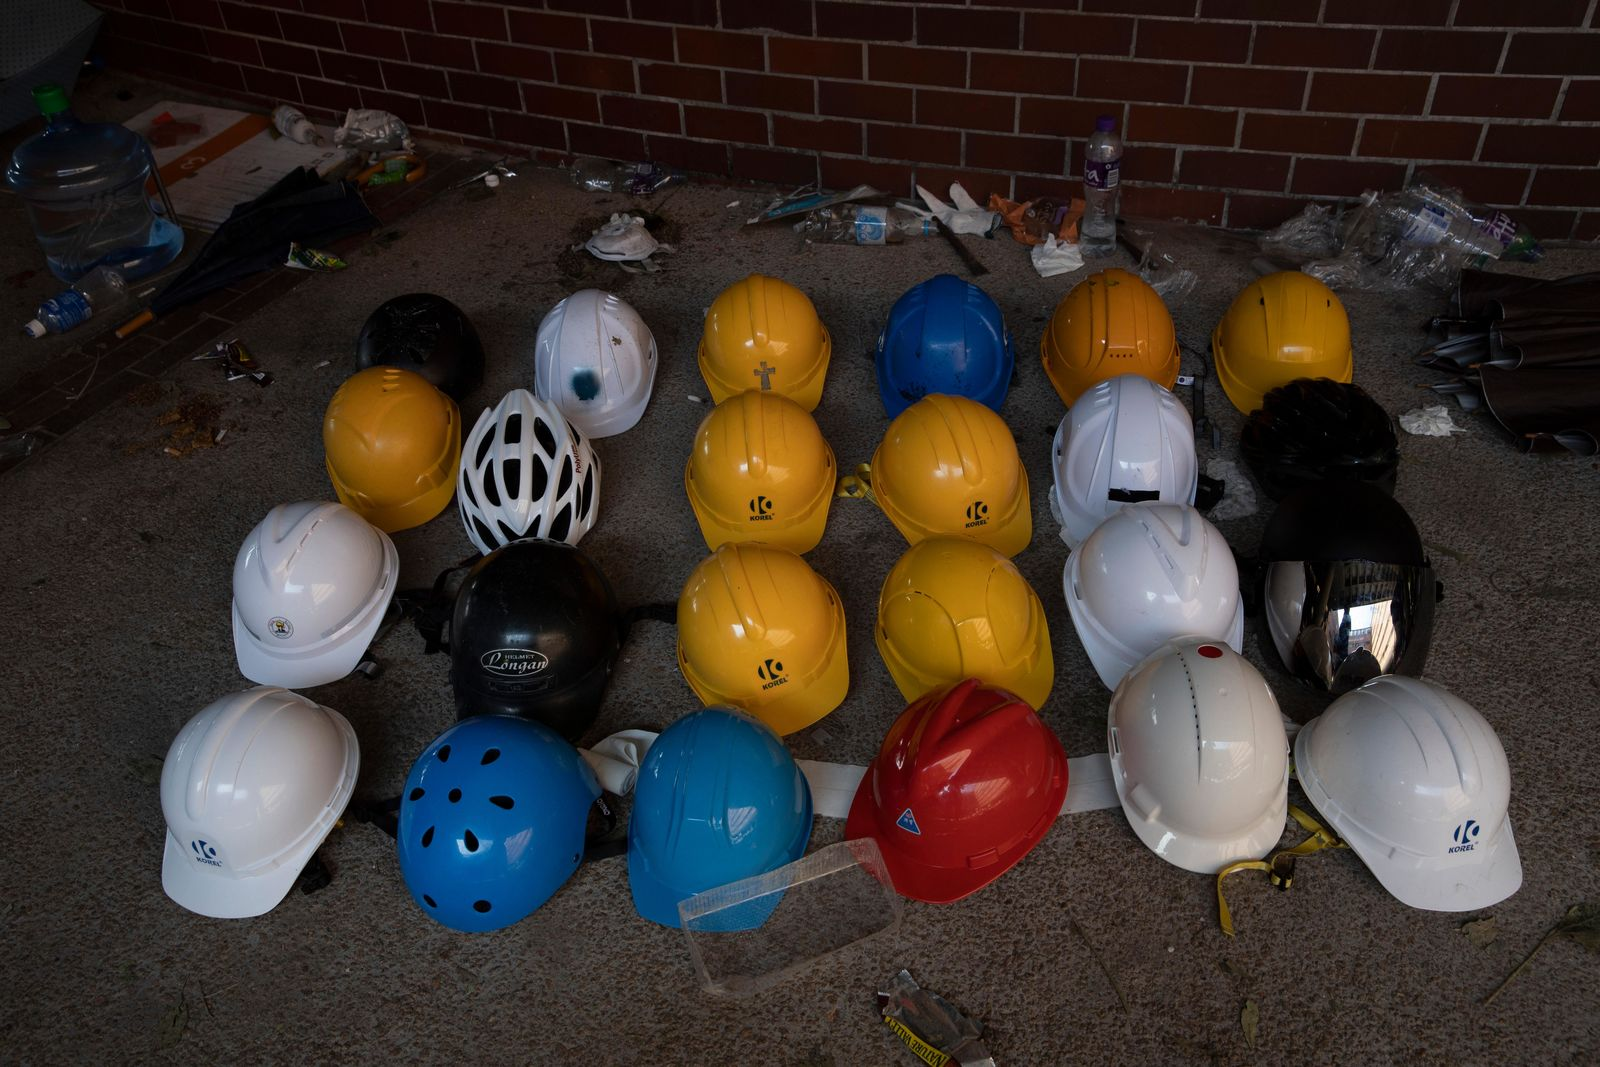 Helmets used by protesters are lined up at the Polytechnic University in Hong Kong on Wednesday, Nov. 20, 2019 (AP Photo/Ng Han Guan)